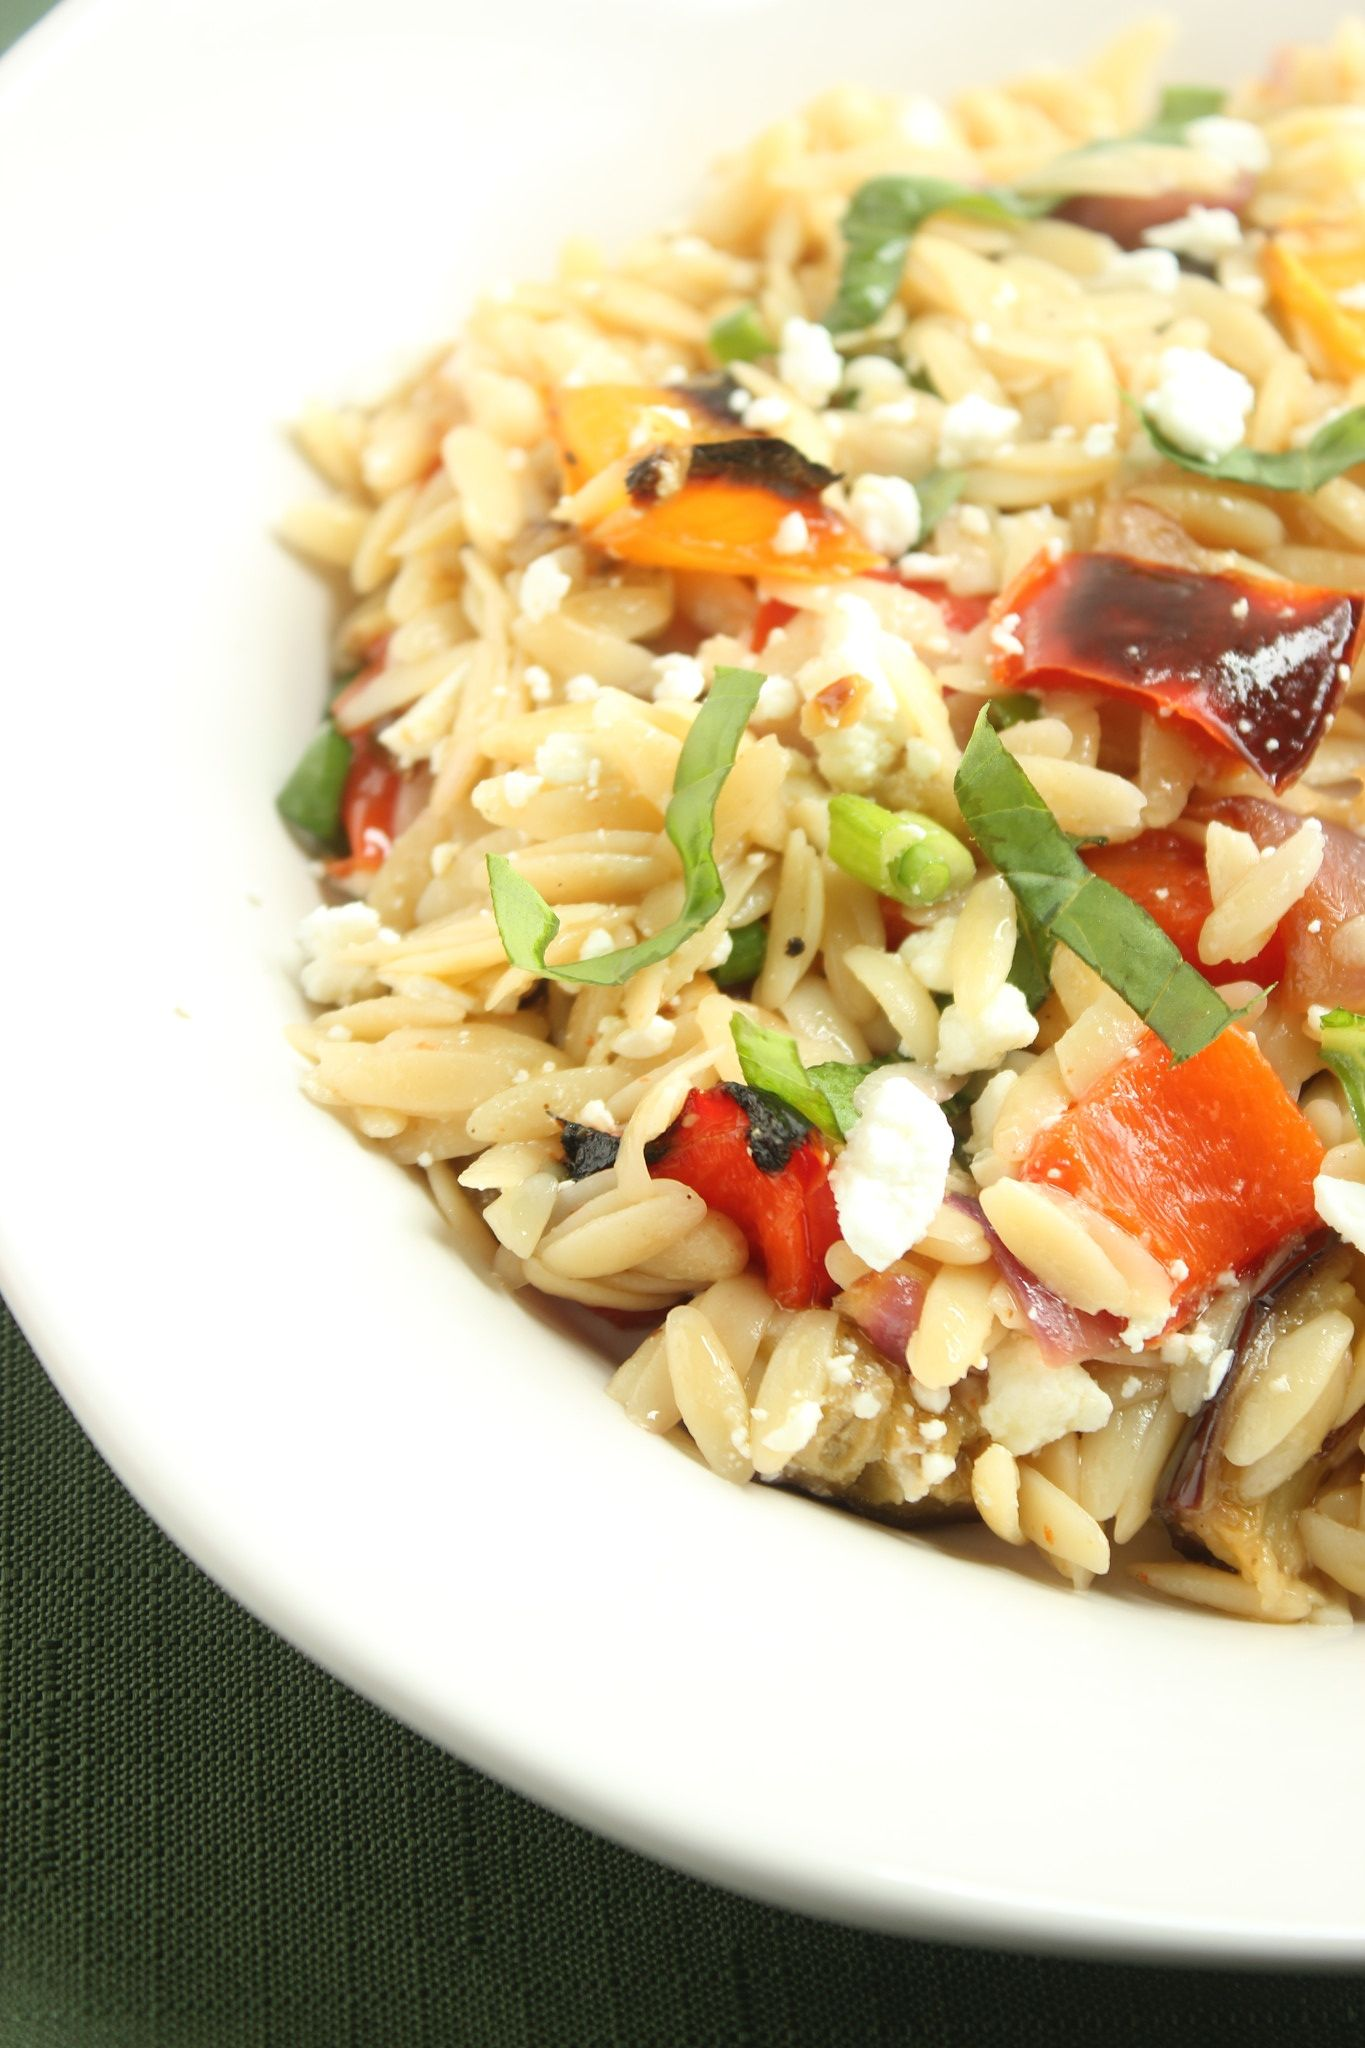 Ina Garten S Orzo With Roasted Vegetables One Of My: ina garten summer pasta